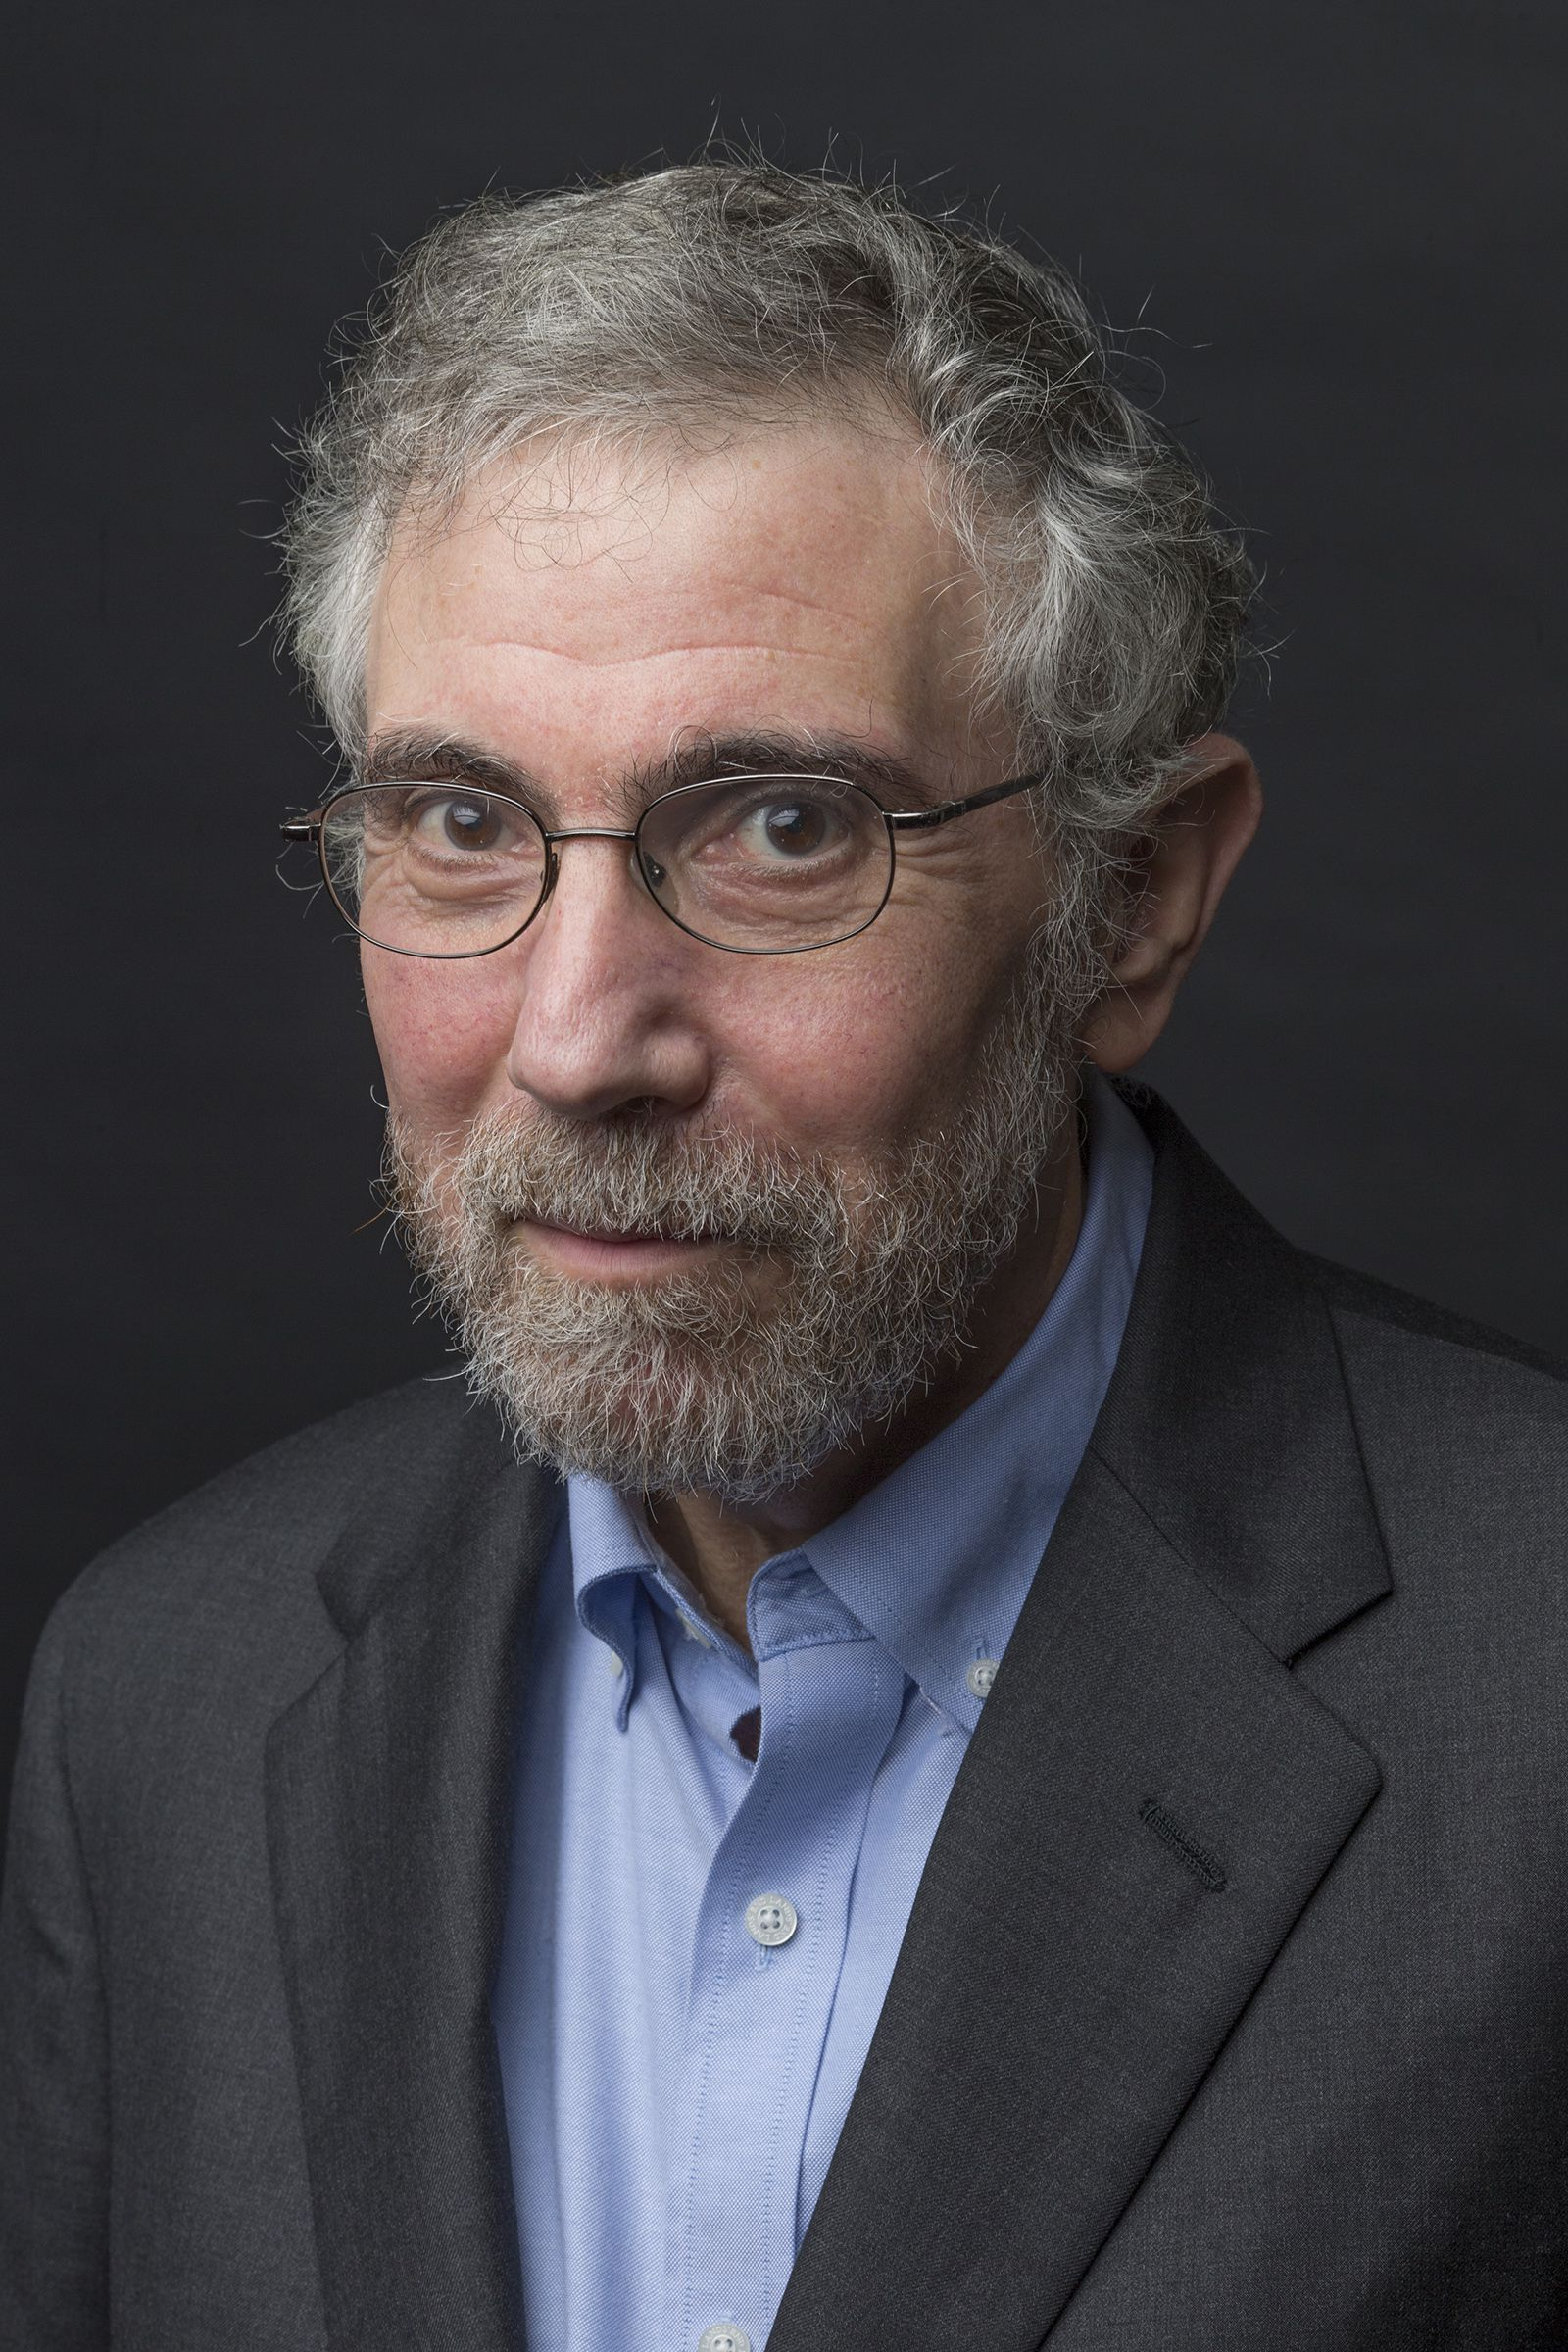 Paul Krugman | The New York Times (CREDIT: Fred R. Conrad)